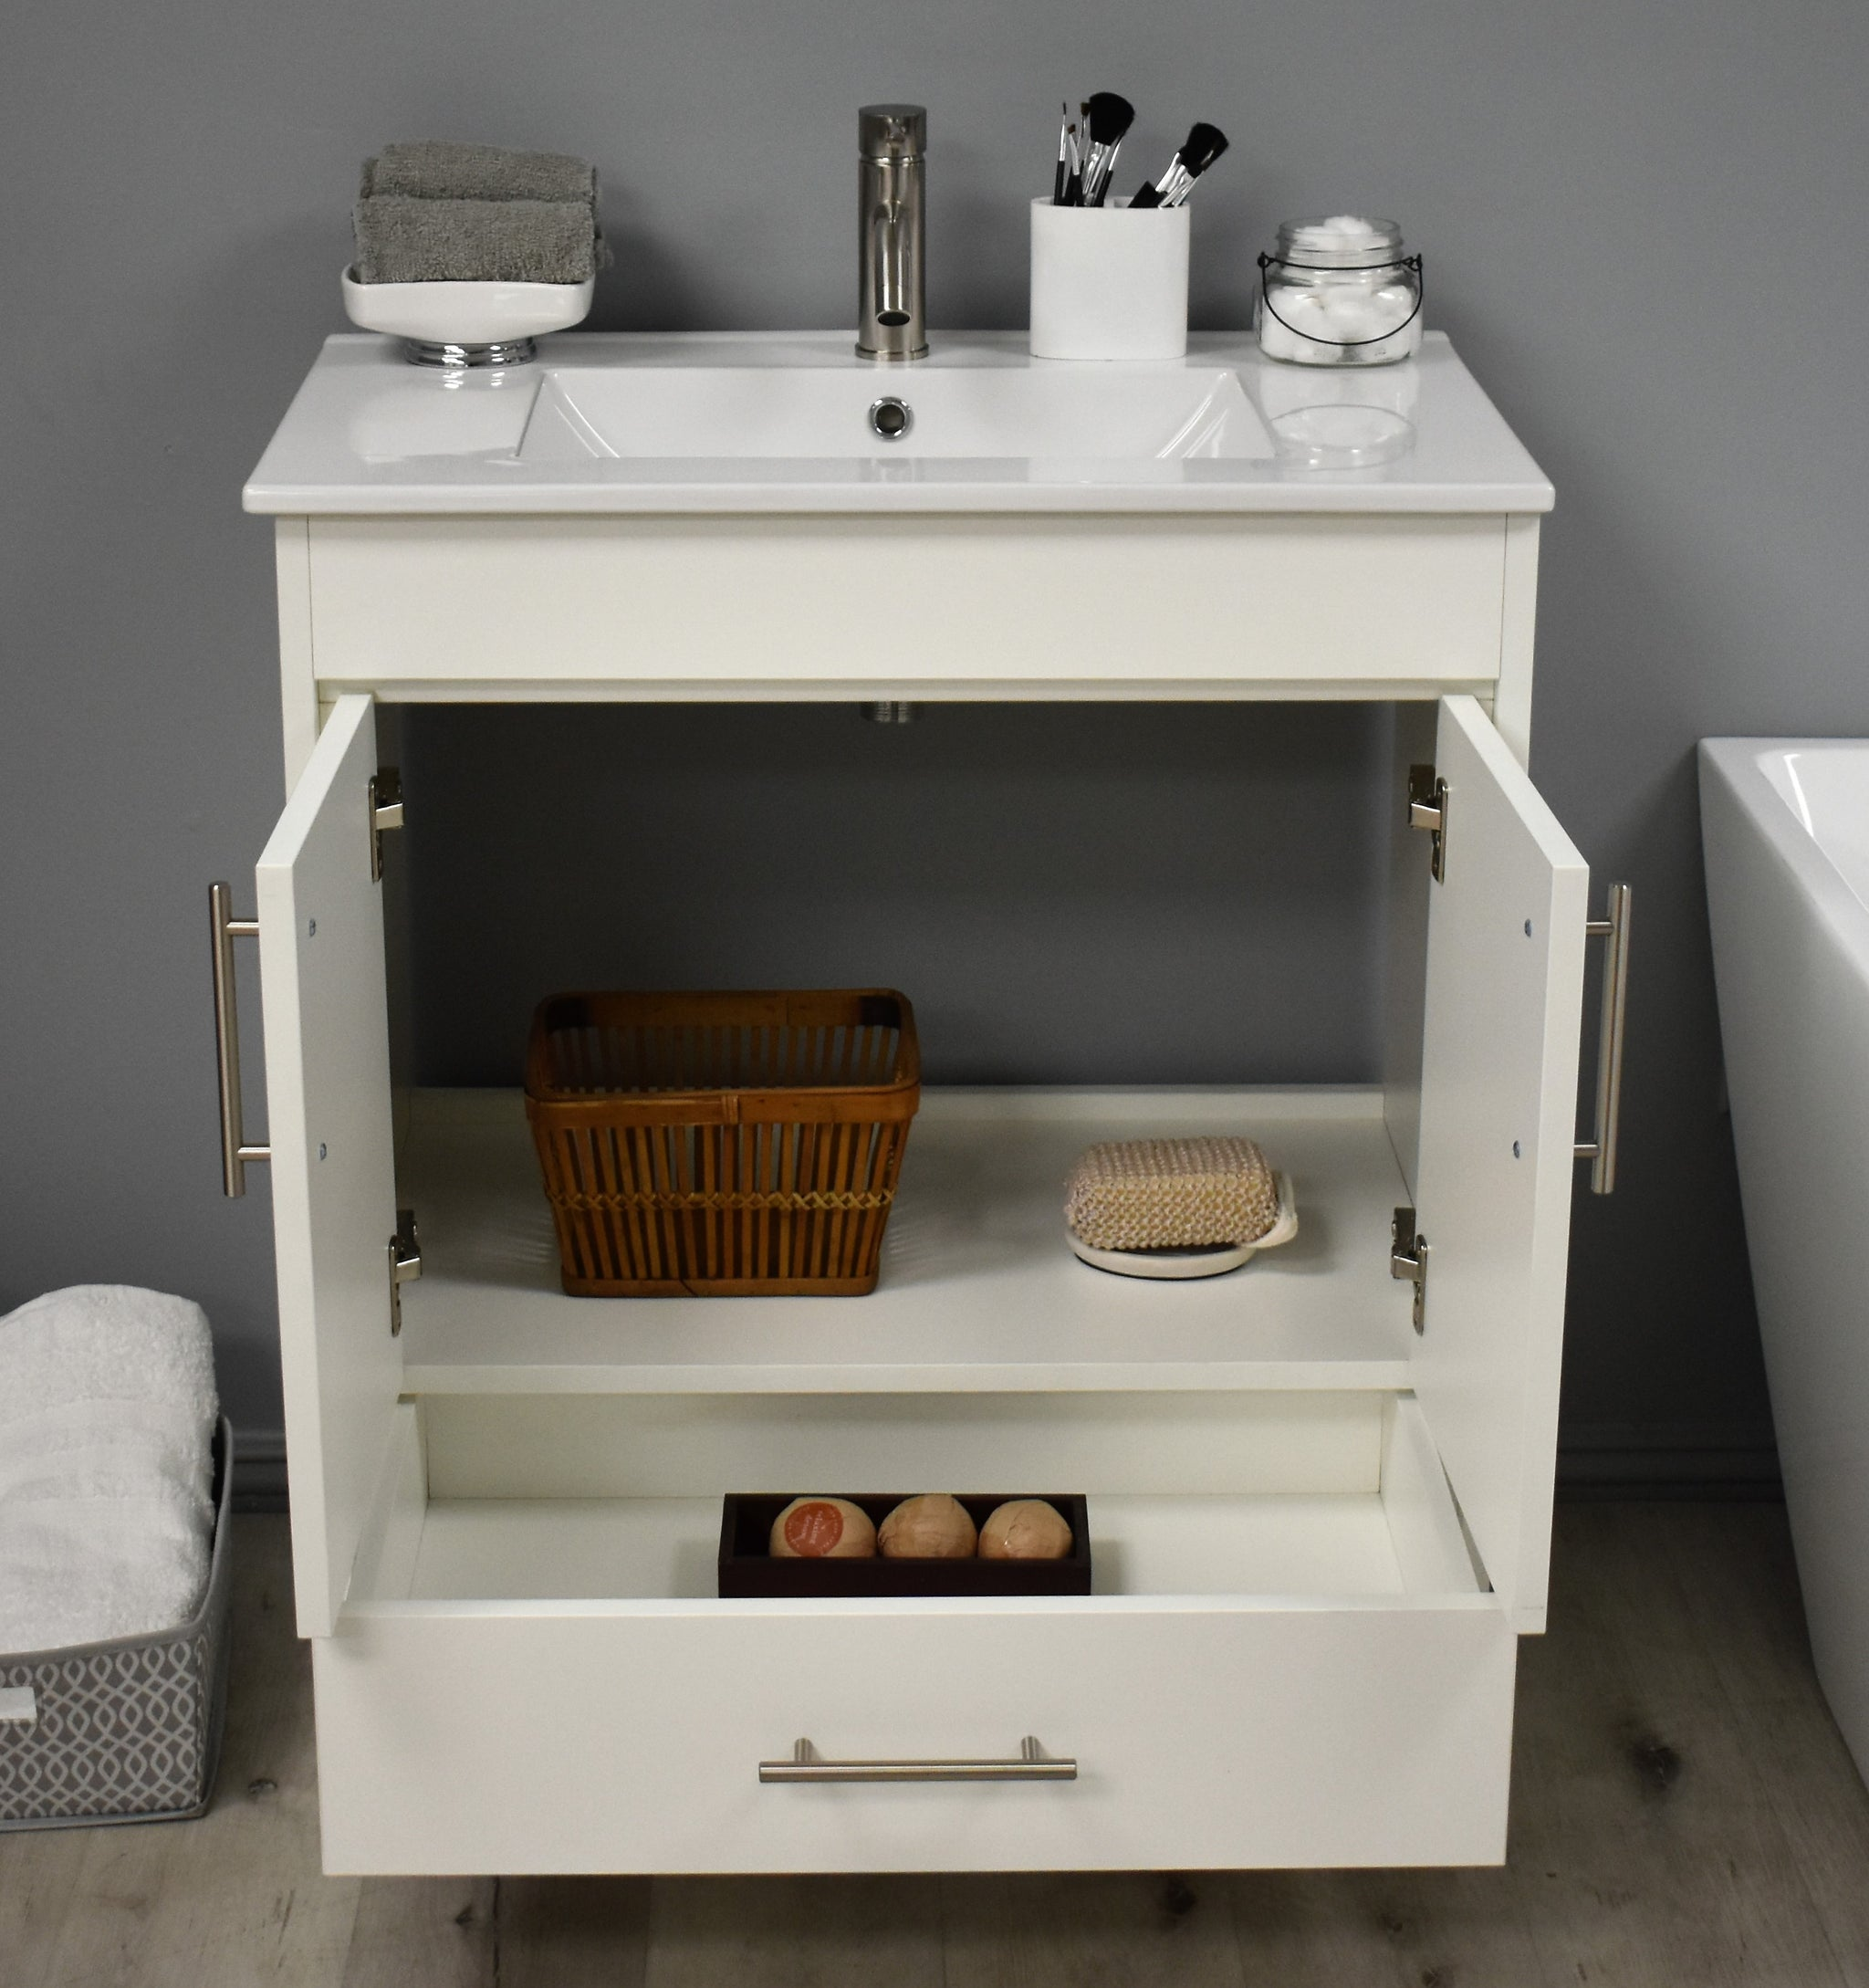 "Pacific 30"" Modern Bathroom Vanity in Soft White with Integrated Ceramic Top and Brushed Nickel Round Handles"